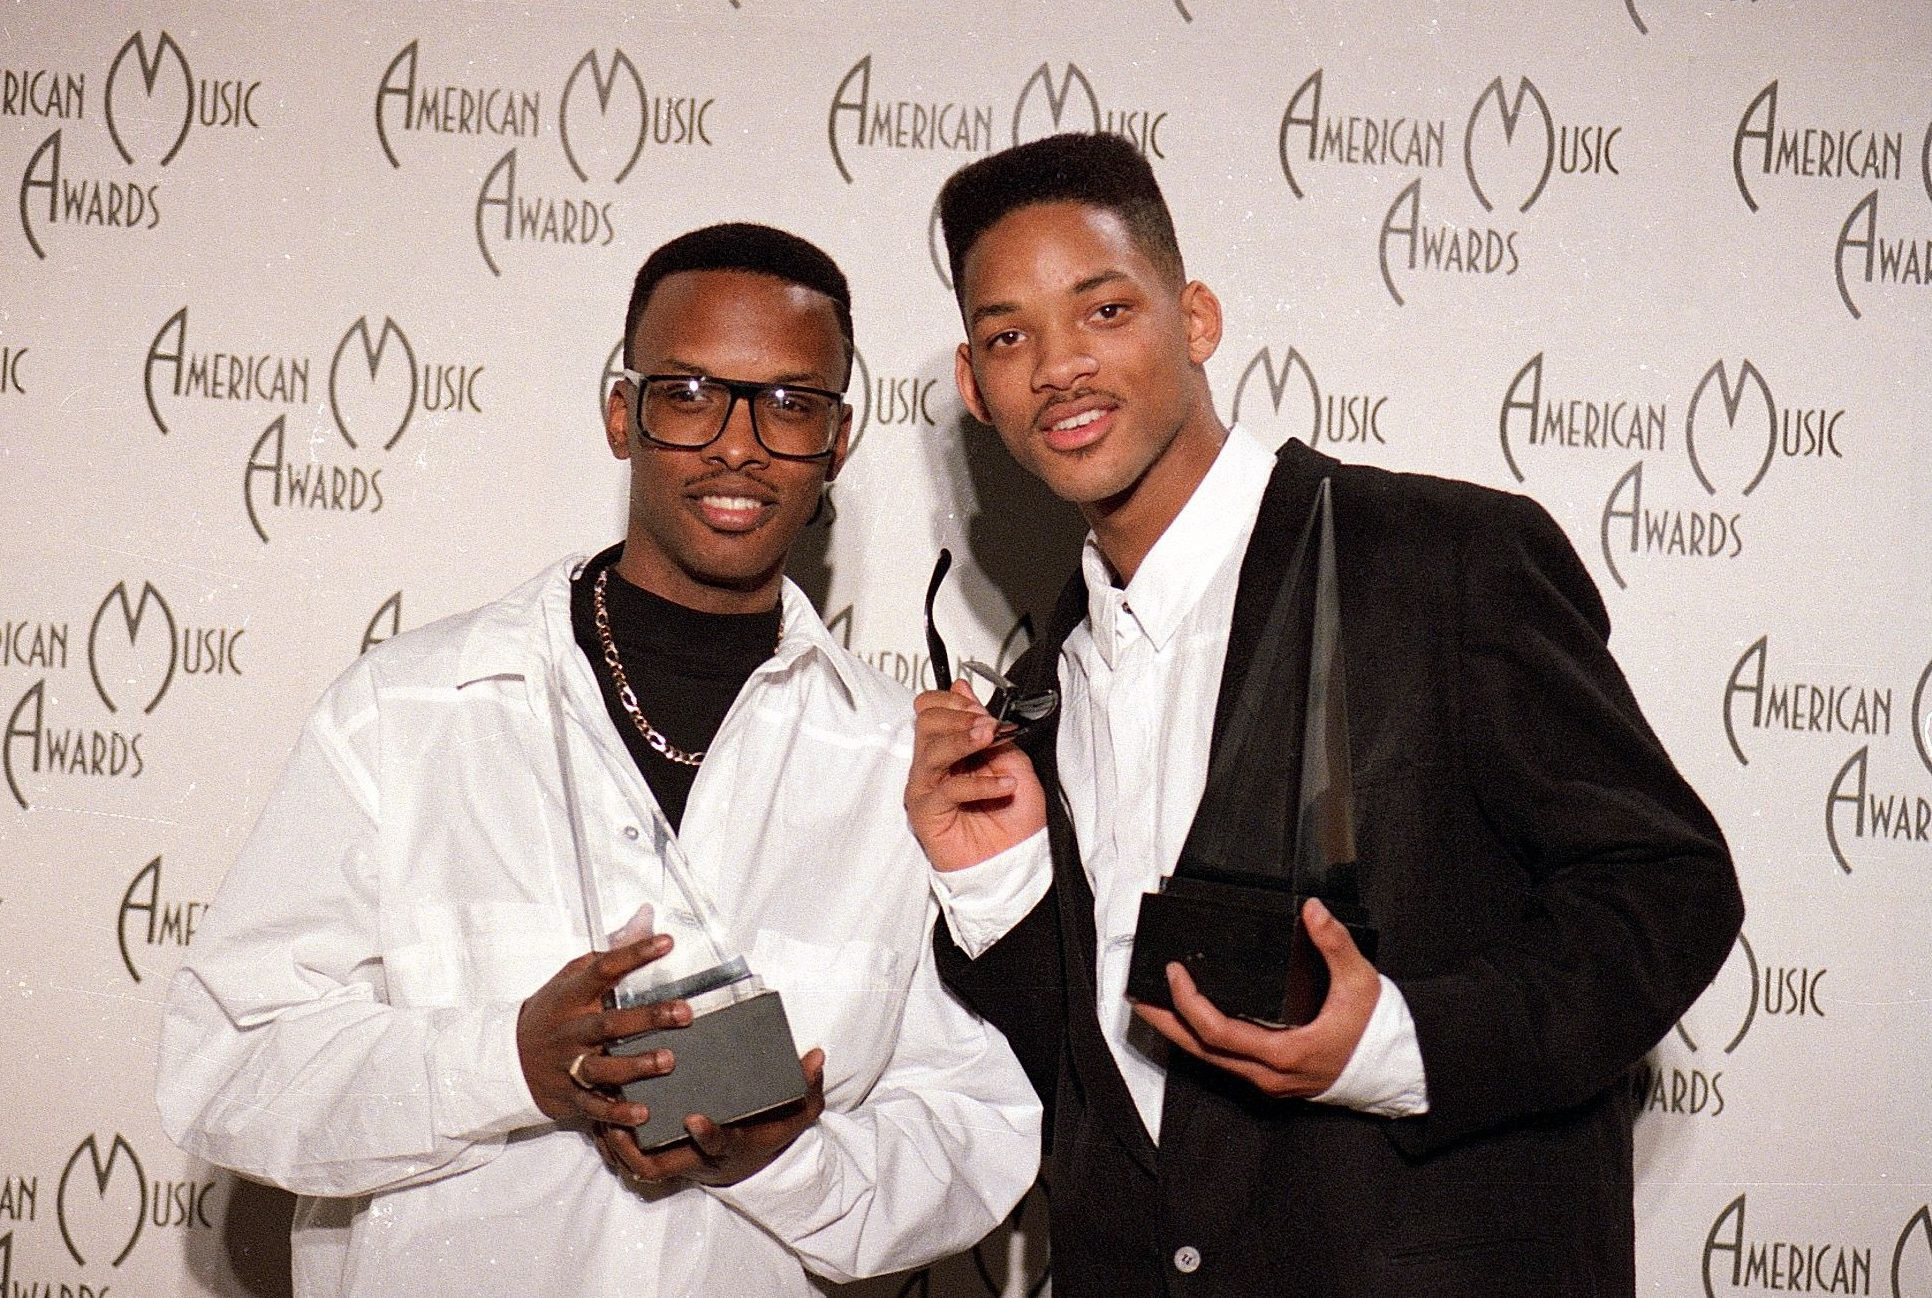 Will Smith And DJ Jazzy Jeff are getting ready to shake the room again | © LENNOX MCLENDON/AP/REX/Shutterstock